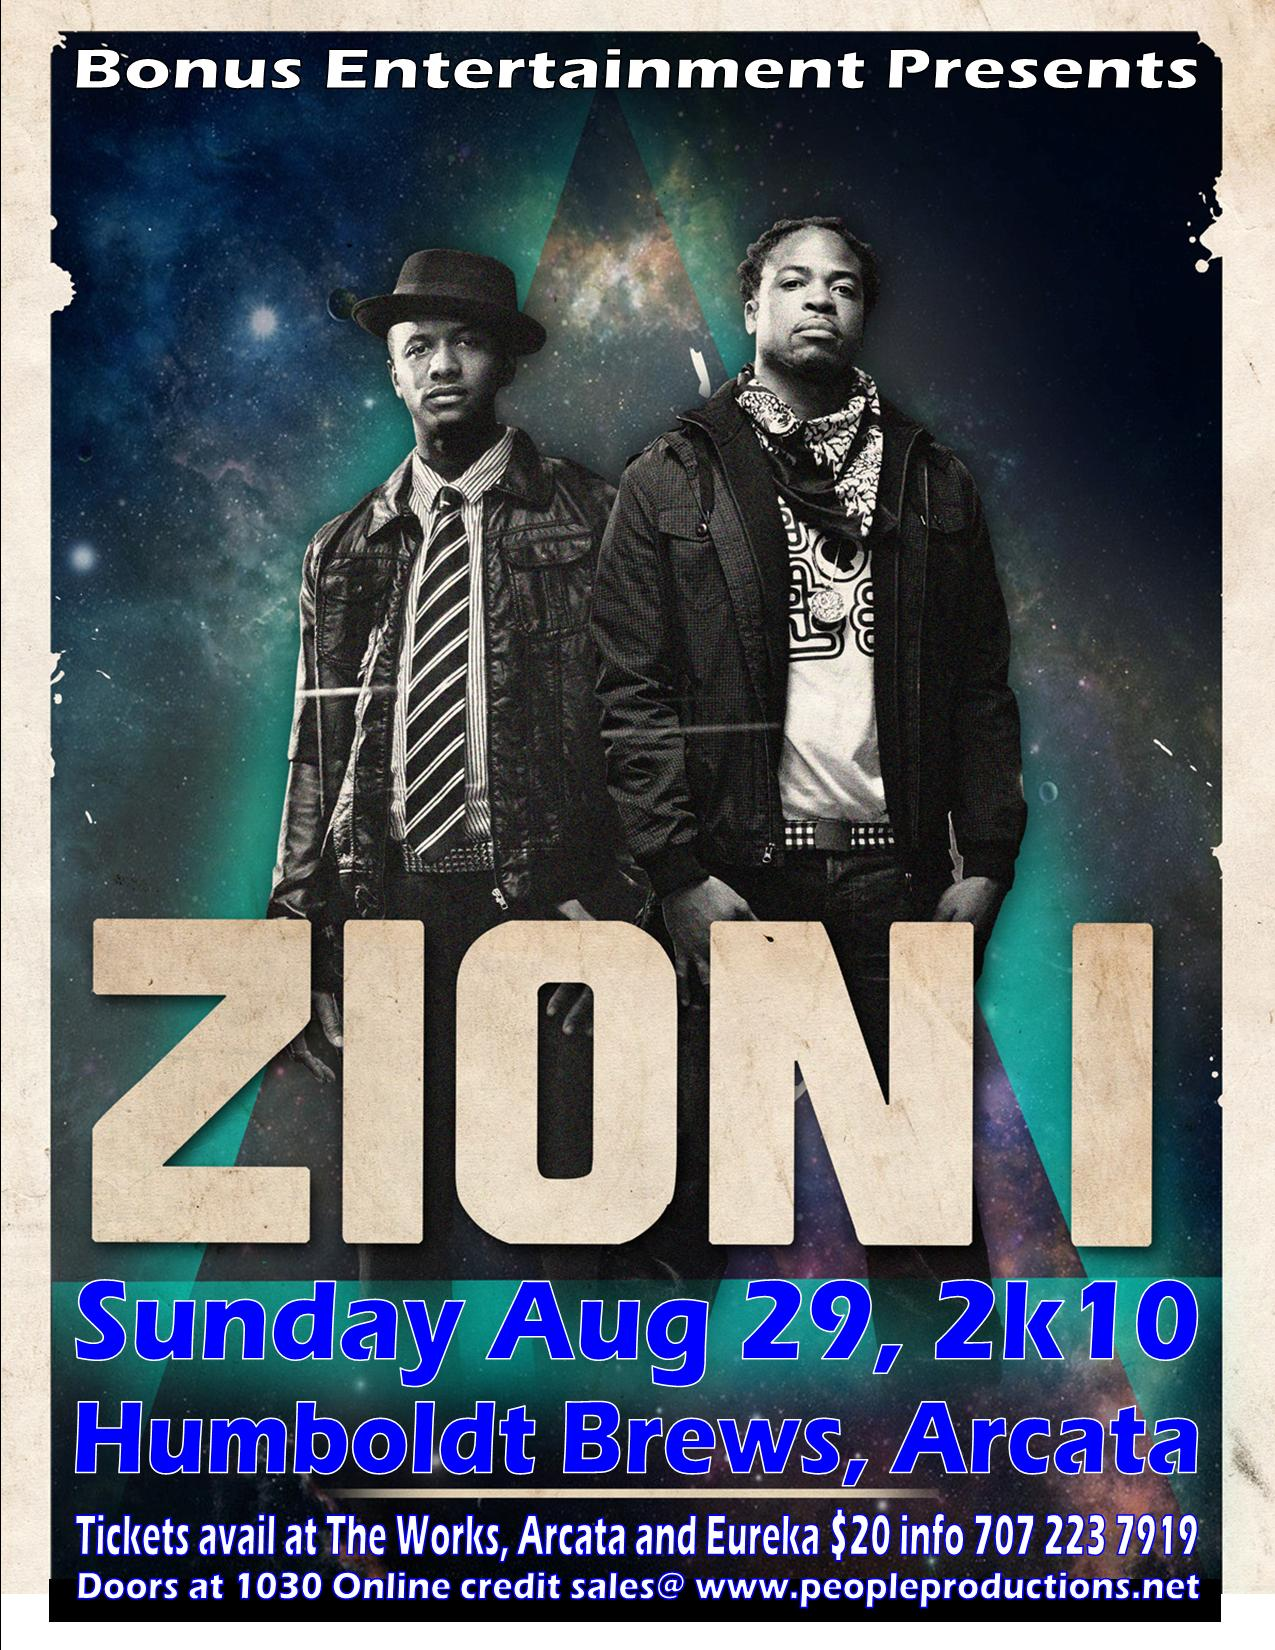 ZION I Sun Aug 29, Humboldt Brews